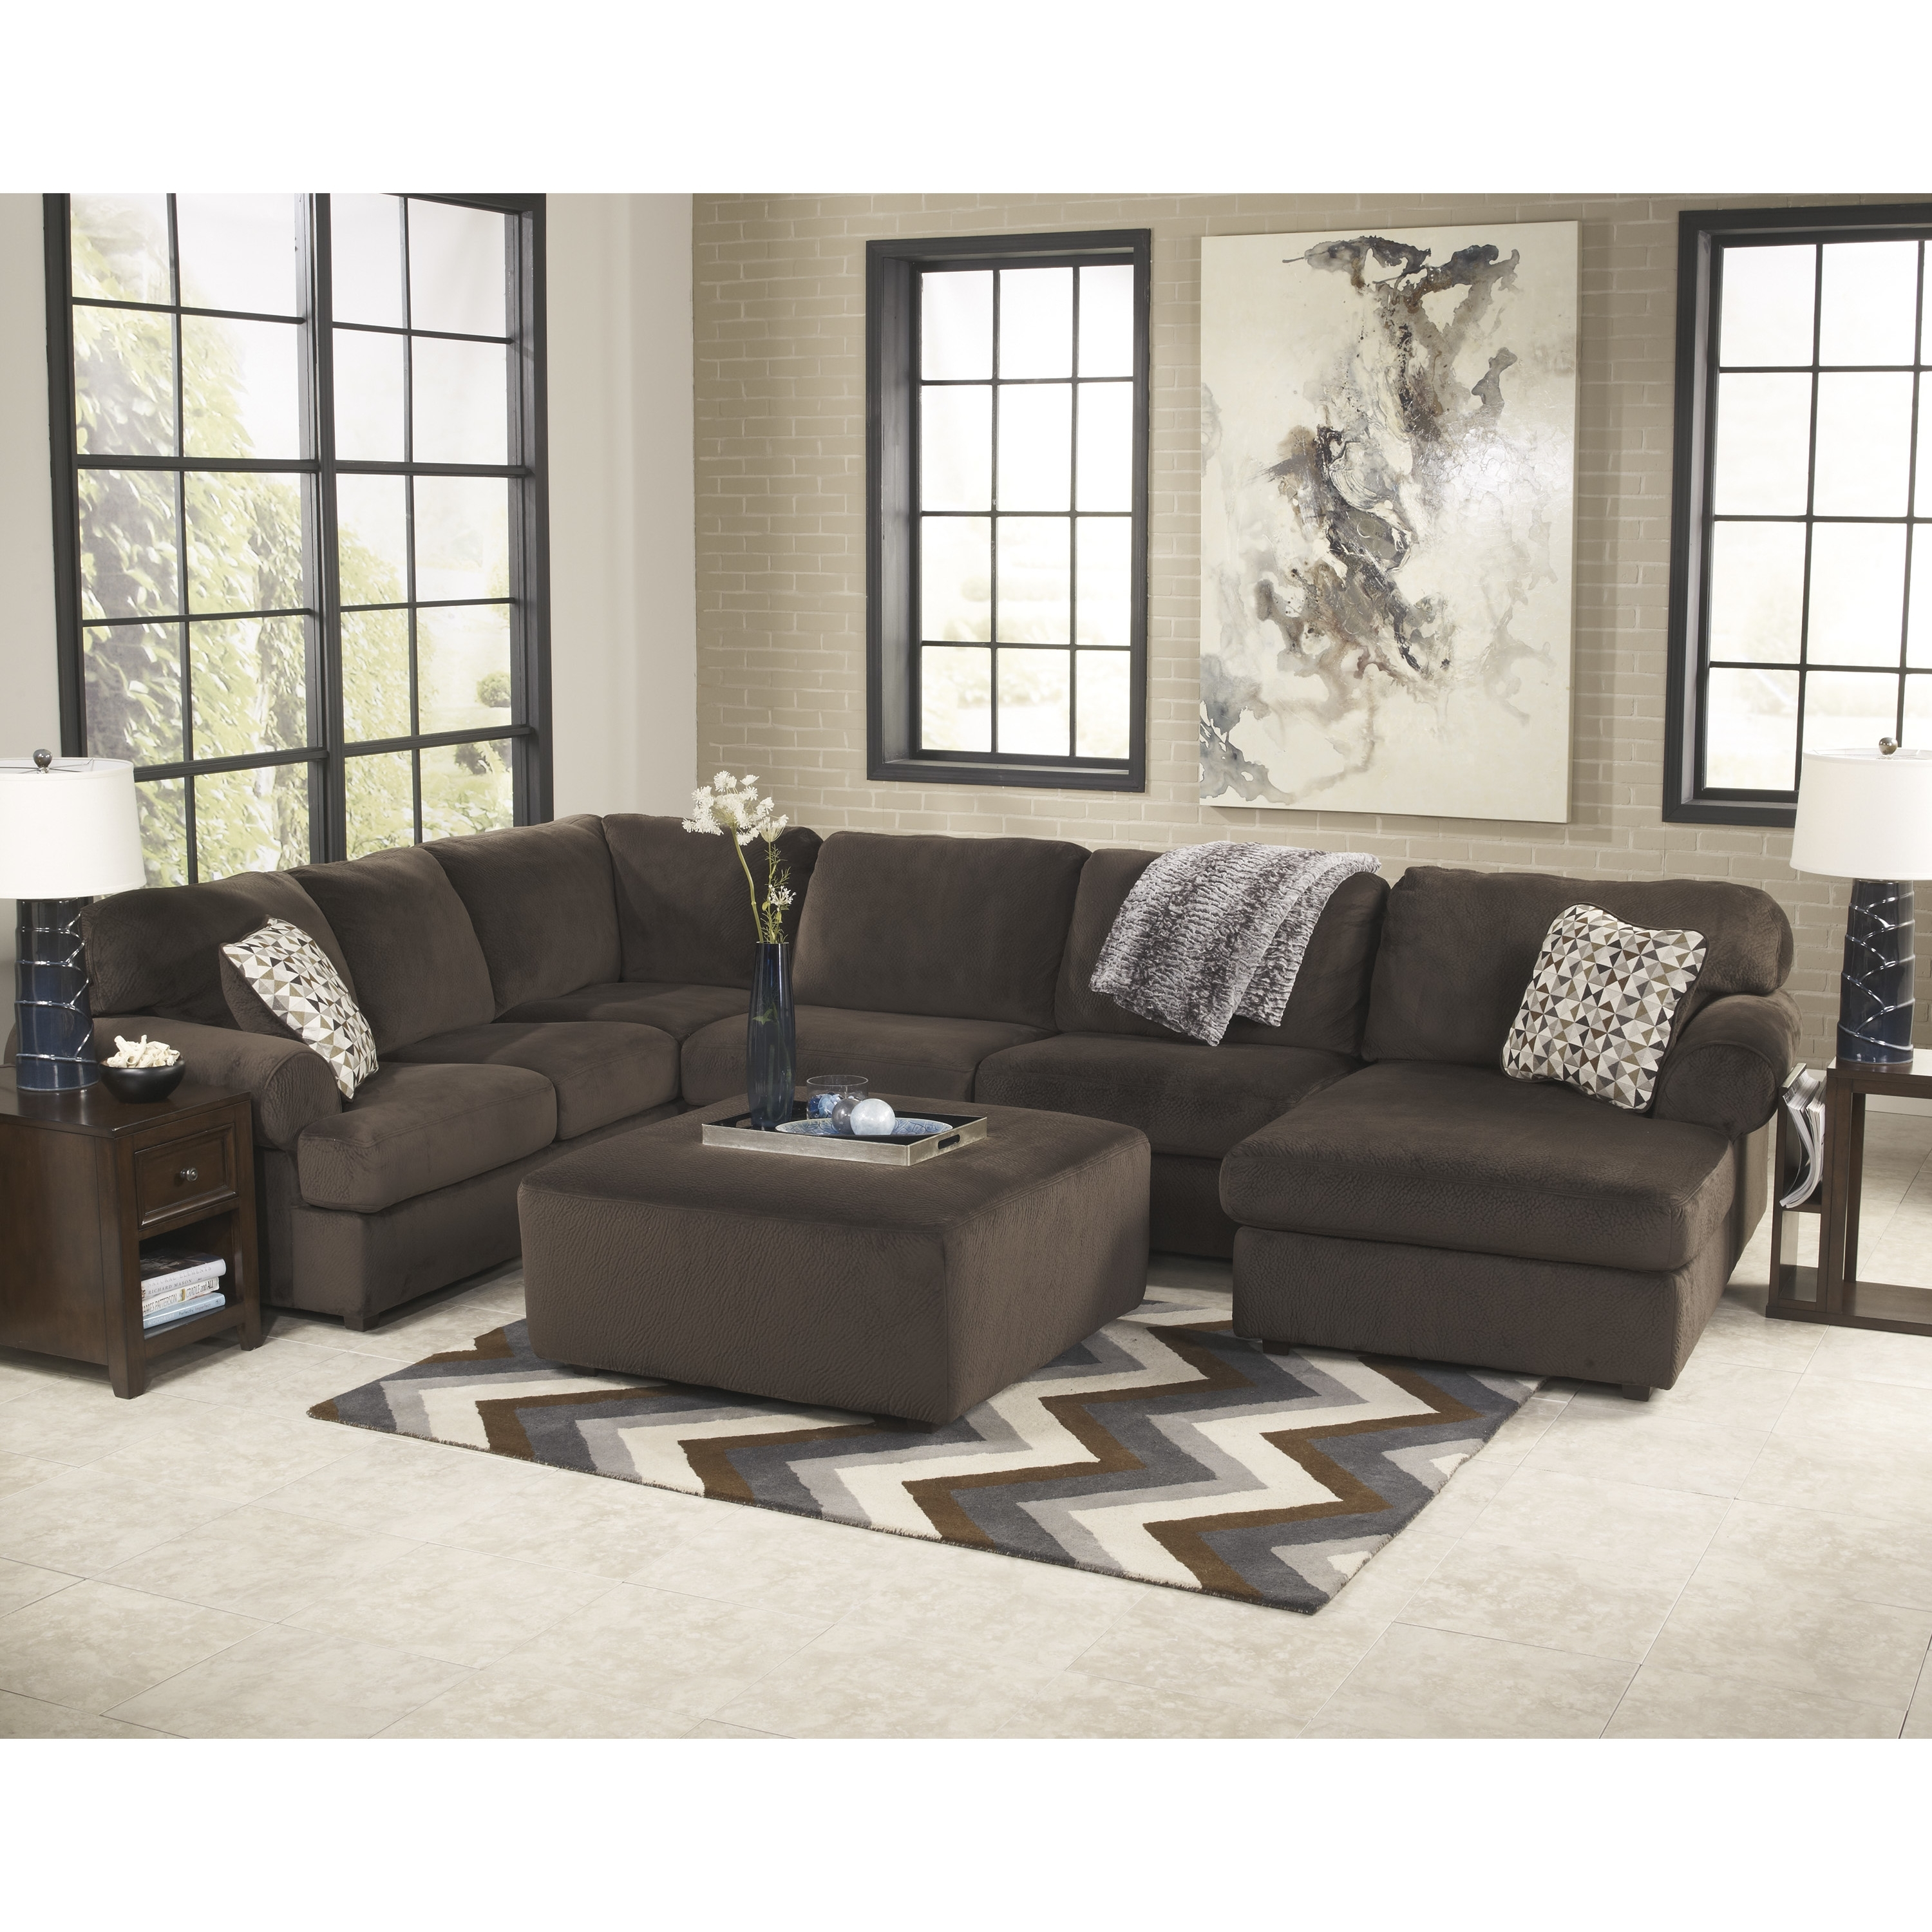 Favorite Wayfair Sectional Sofas Inside Free Wayfair Sectionals Furniture Using Pretty Cheap Sectional (View 9 of 15)